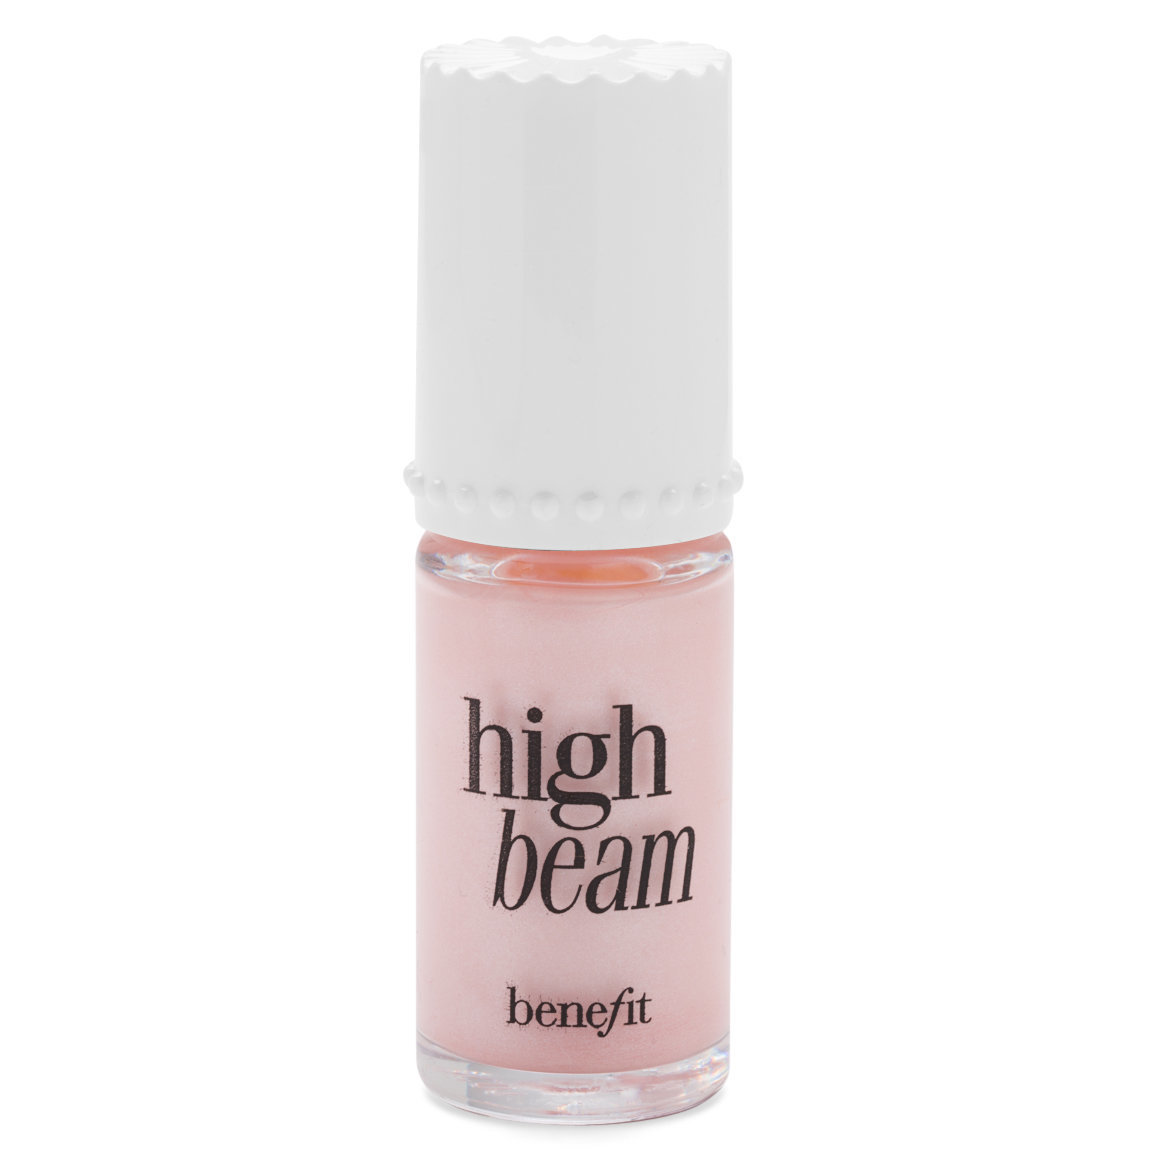 Benefit Cosmetics High Beam Liquid Highlighter 6 ml product swatch.